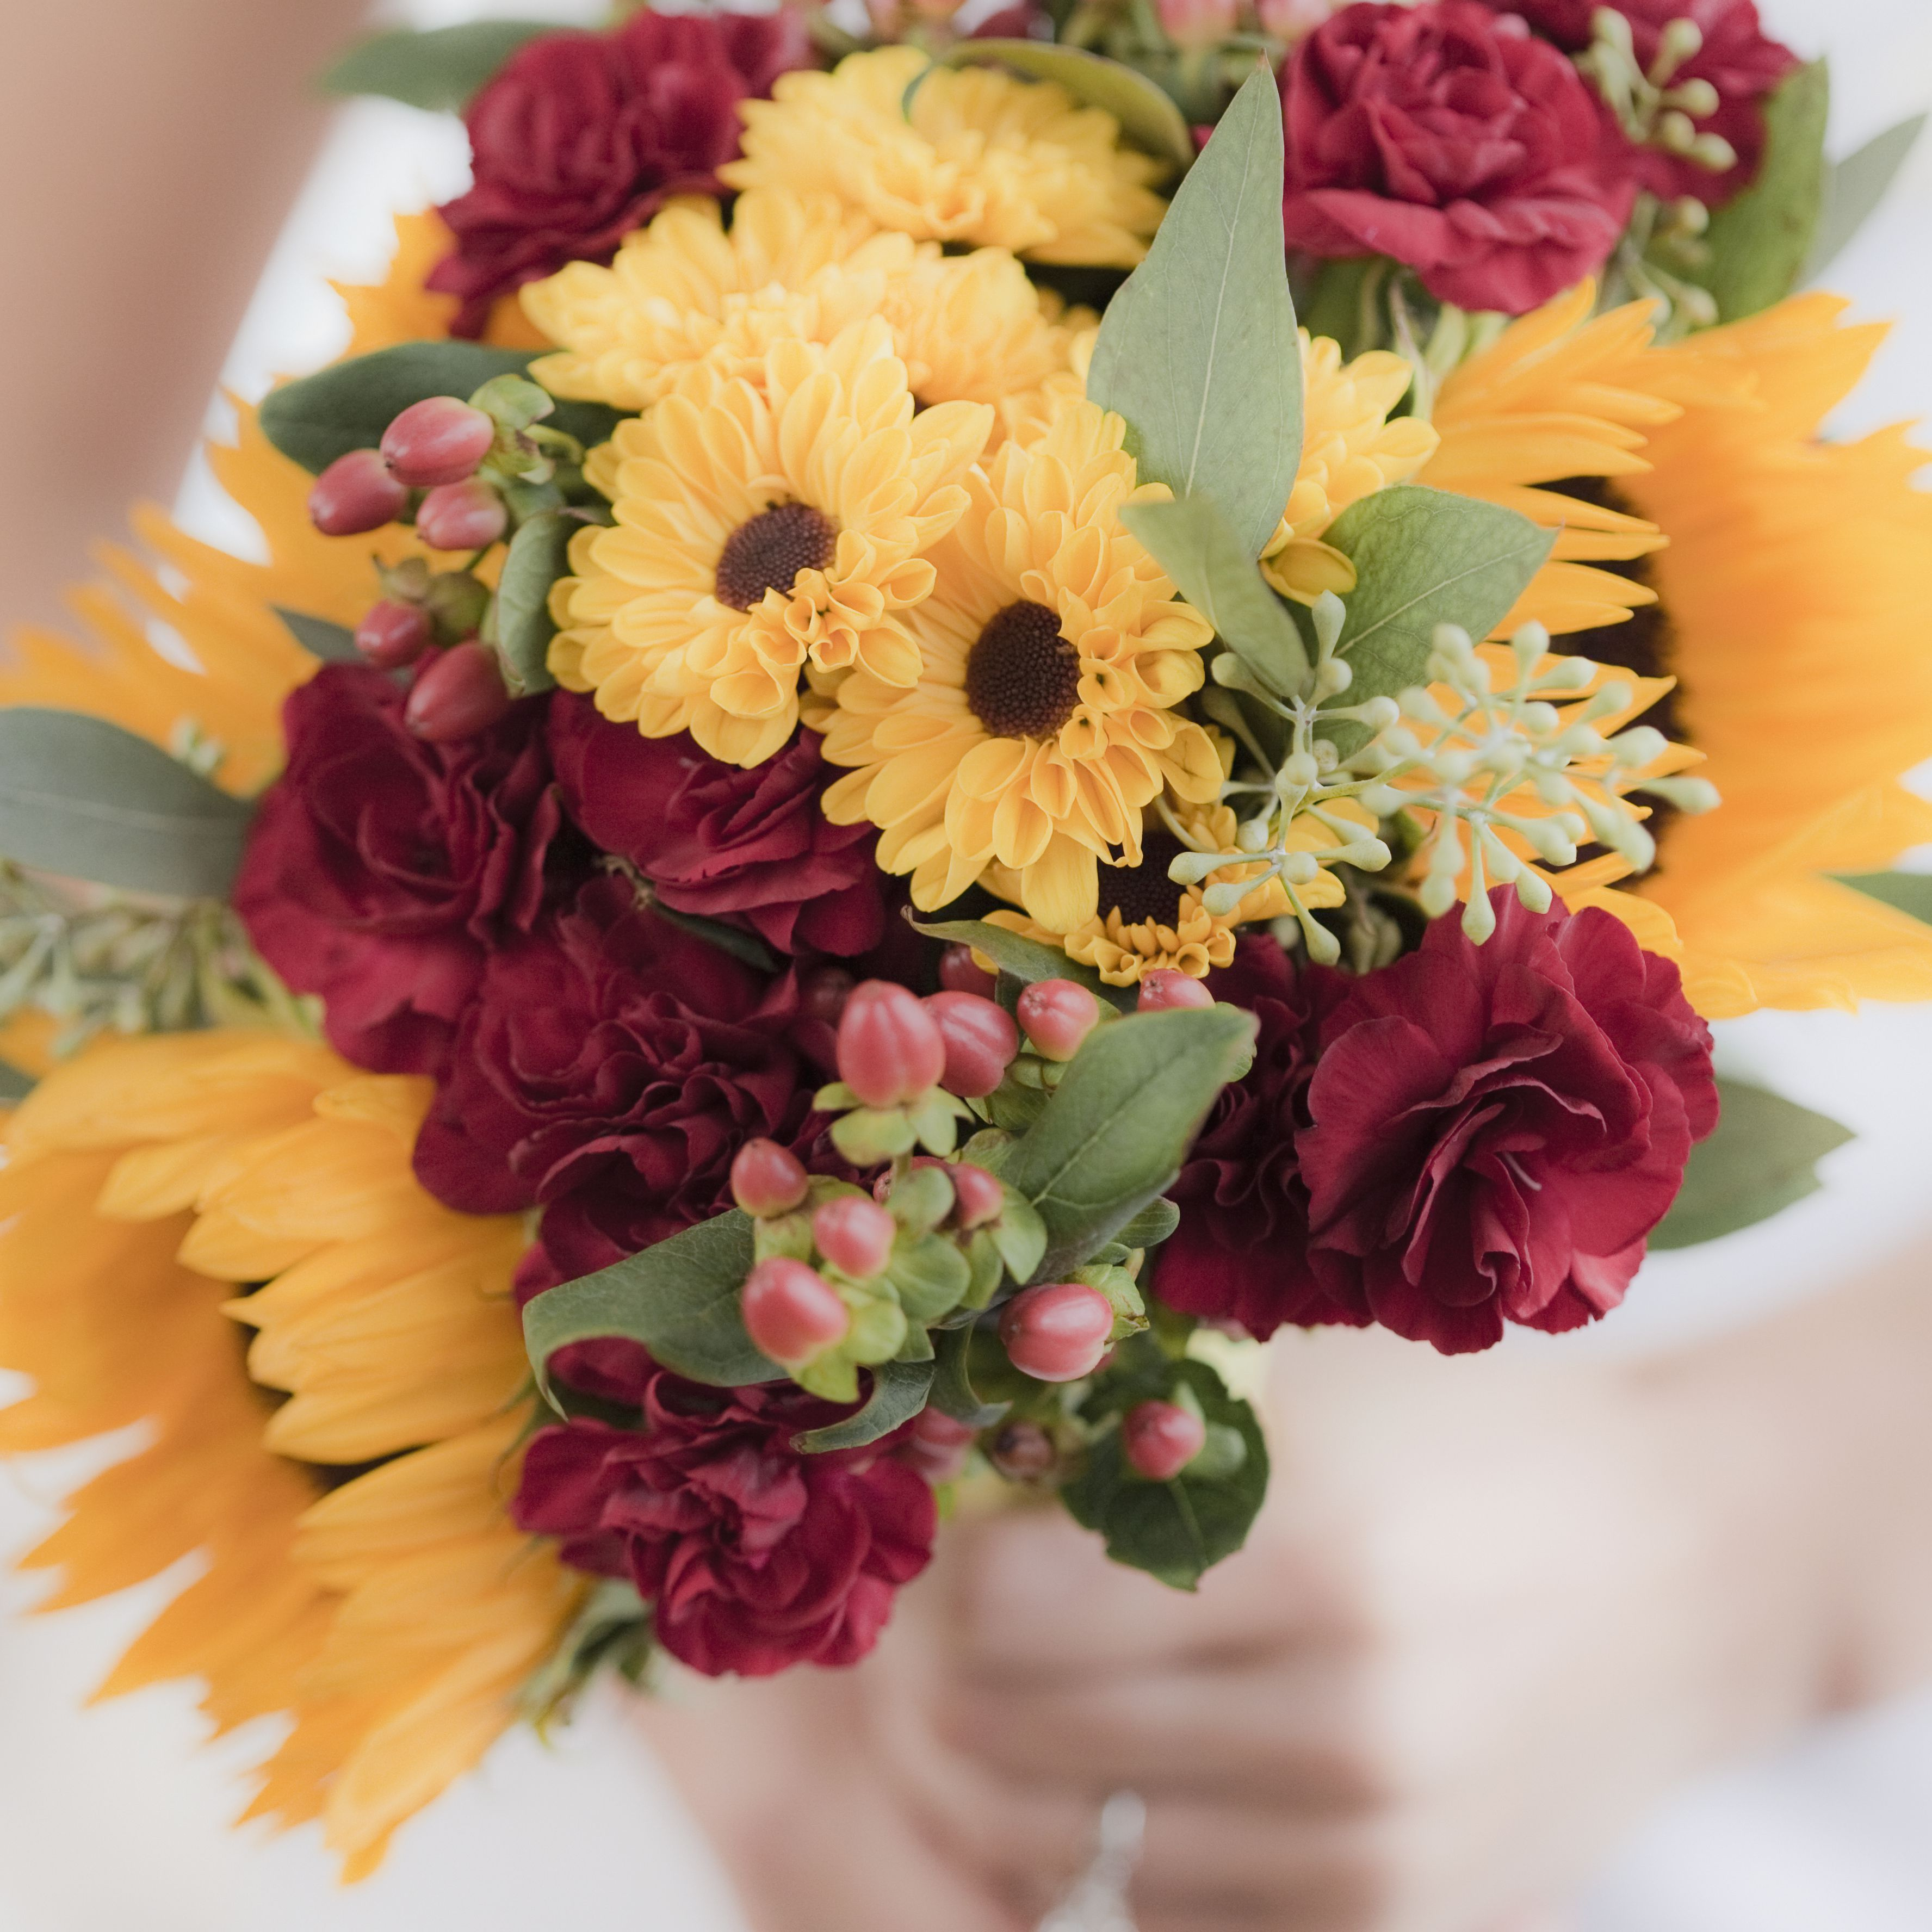 Rose and sunflower bridal bouquet